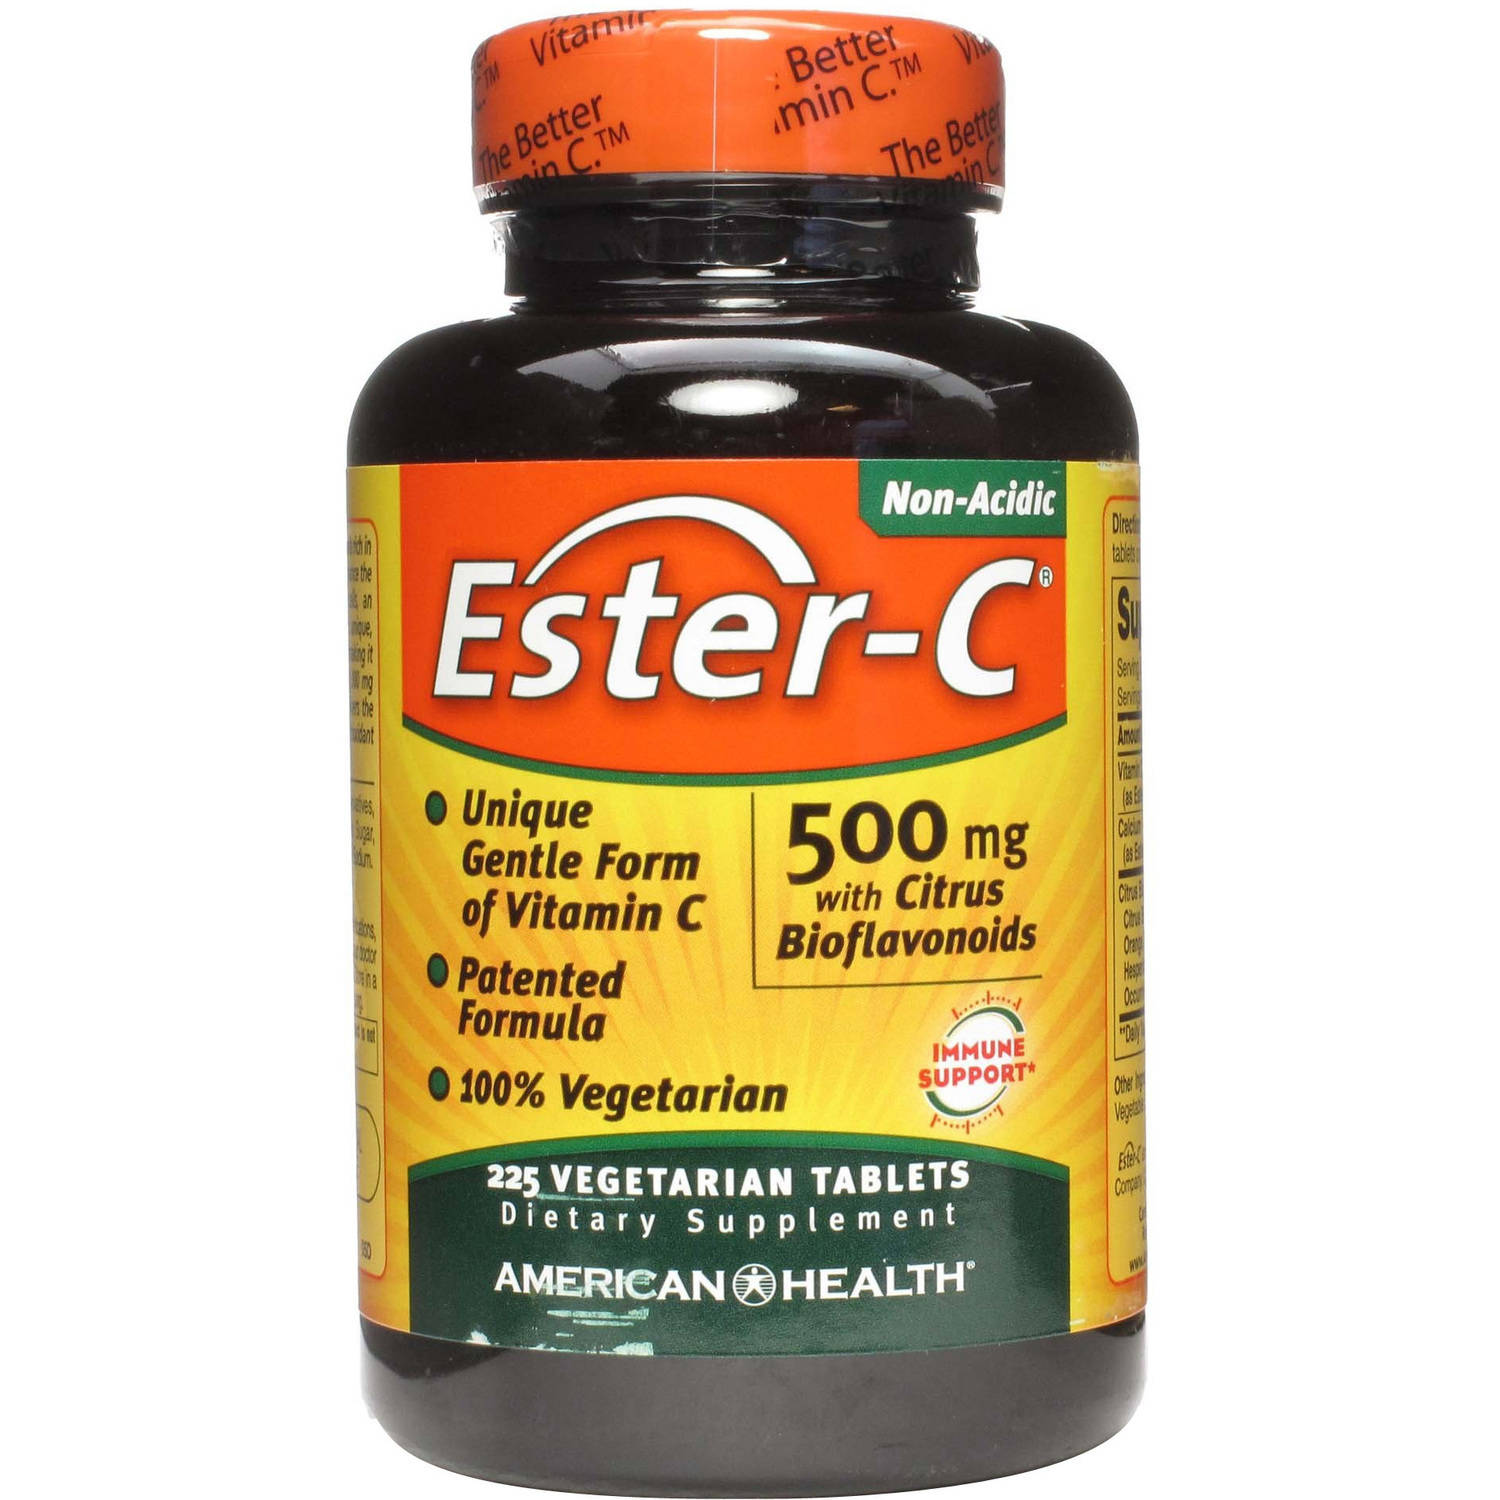 American Health Ester-C, 500mg with Citrus Bioflavonoids, 225 CT